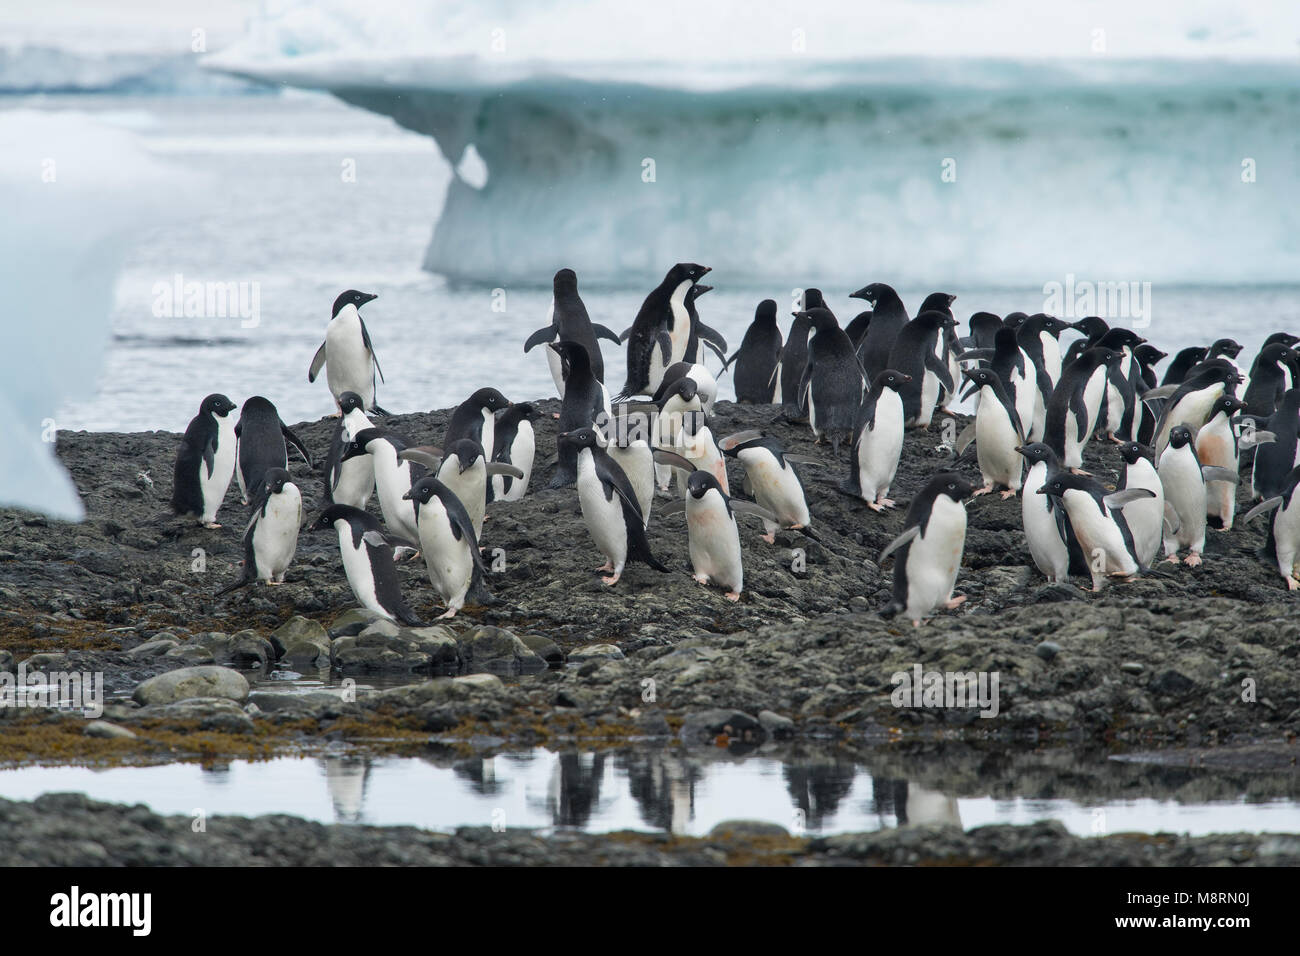 Groups of Adelie penguins walk along the shoreline at Brown Bluff, Antarctica. Stock Photo